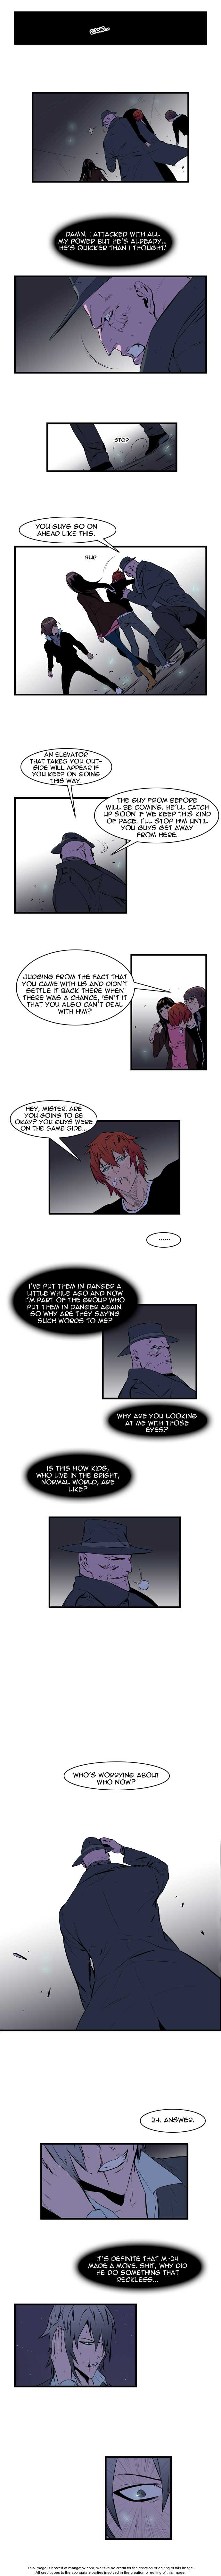 Noblesse 71 Page 3